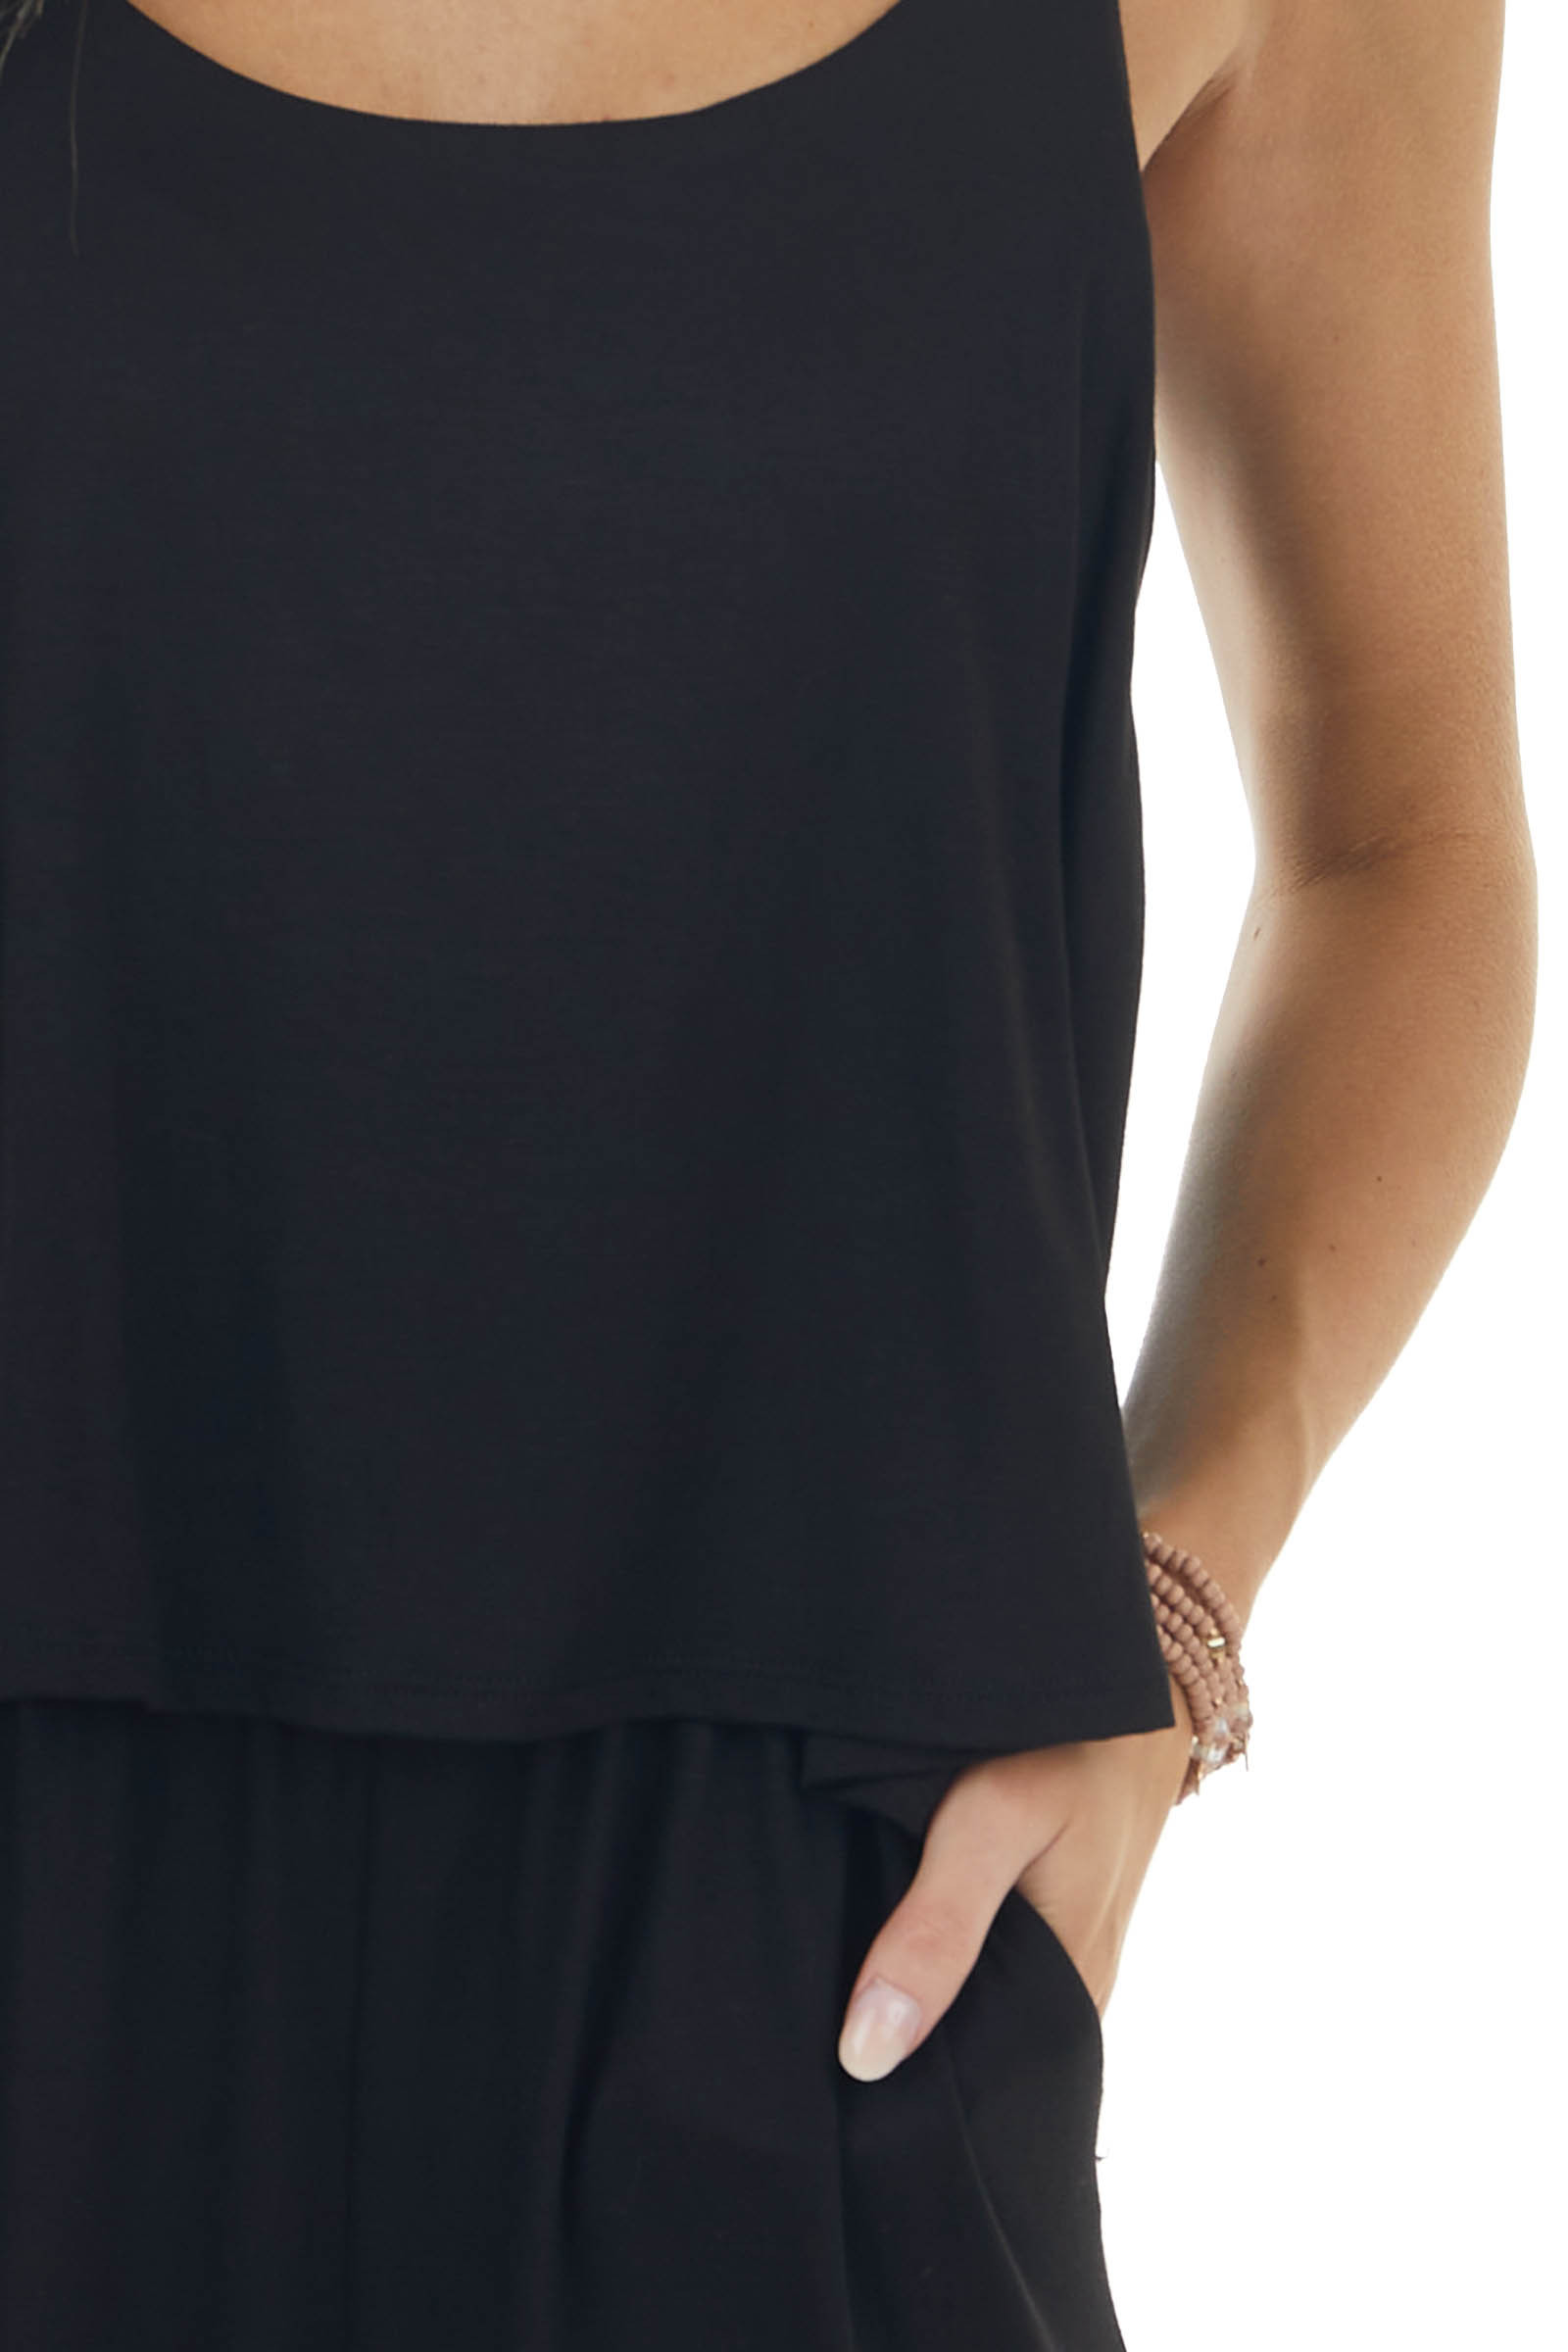 Black Sleeveless Overlaying Knit Jumpsuit with Pockets